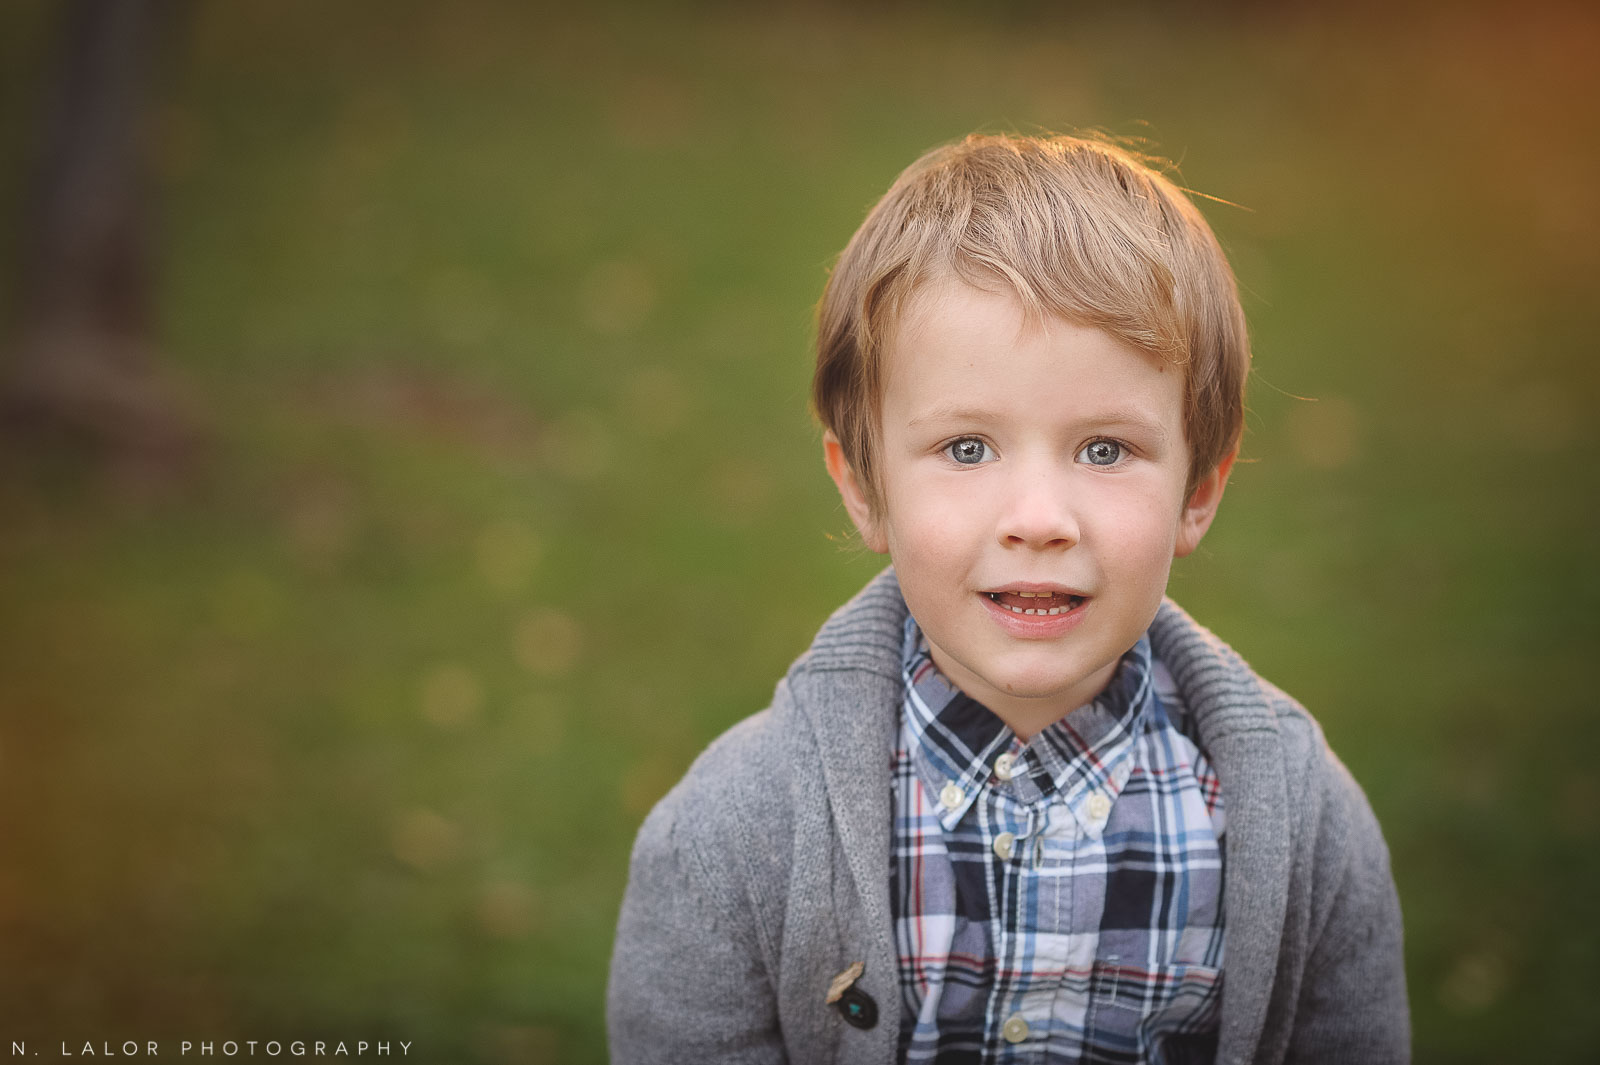 nlalor-photography-boy-fall-new-canaan-nature-center-photo-session-4.jpg